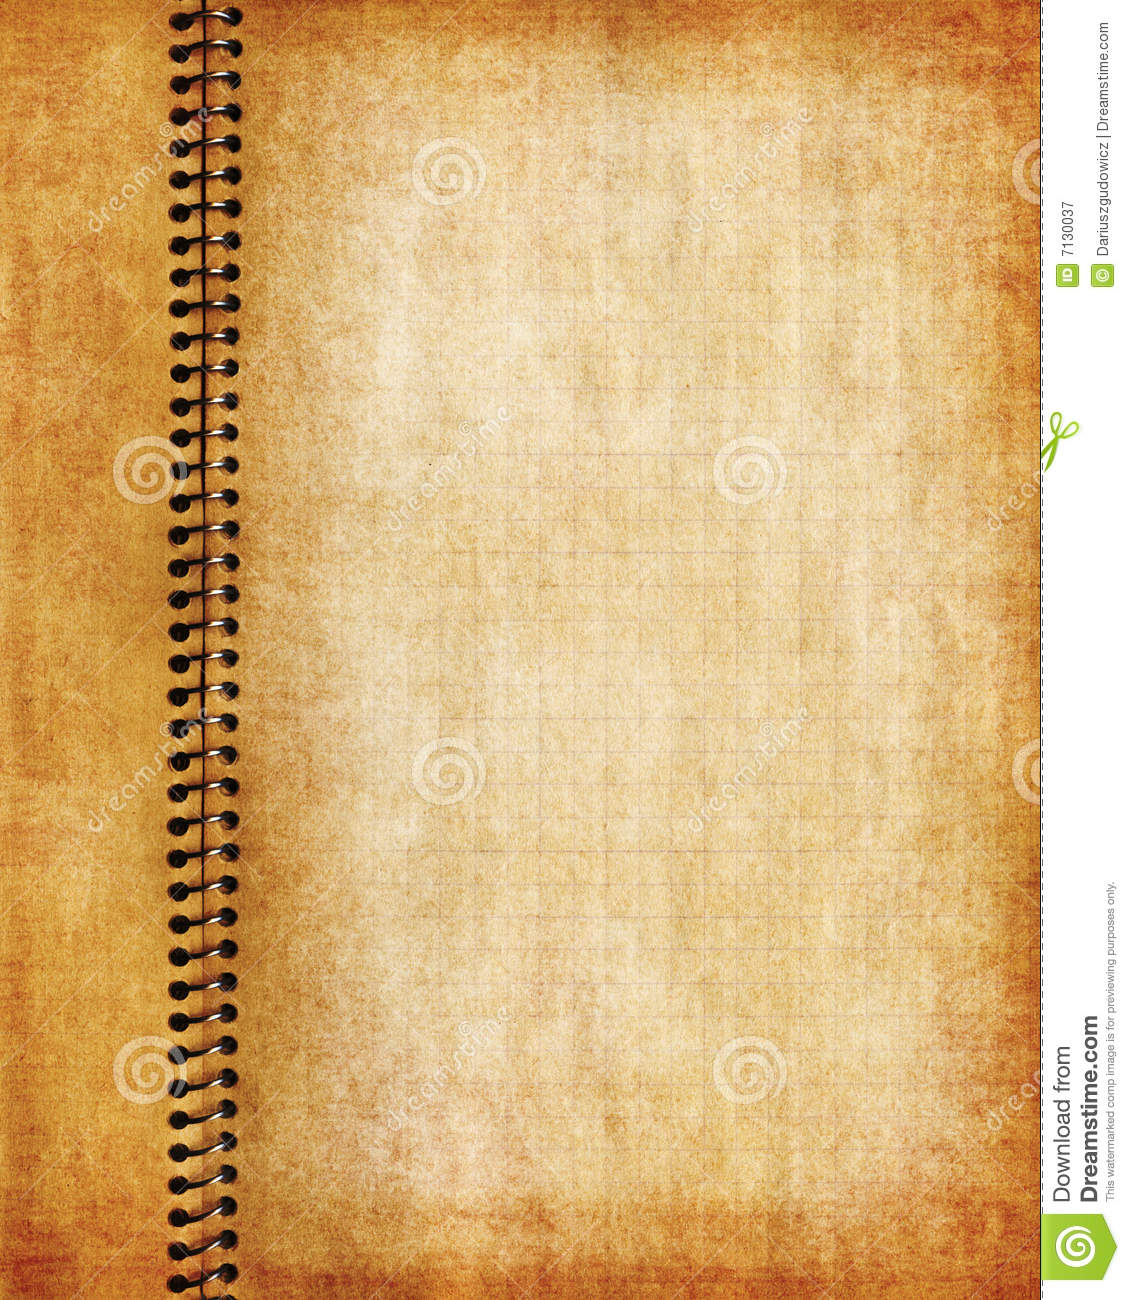 old grunge notebook page royalty free stock photography